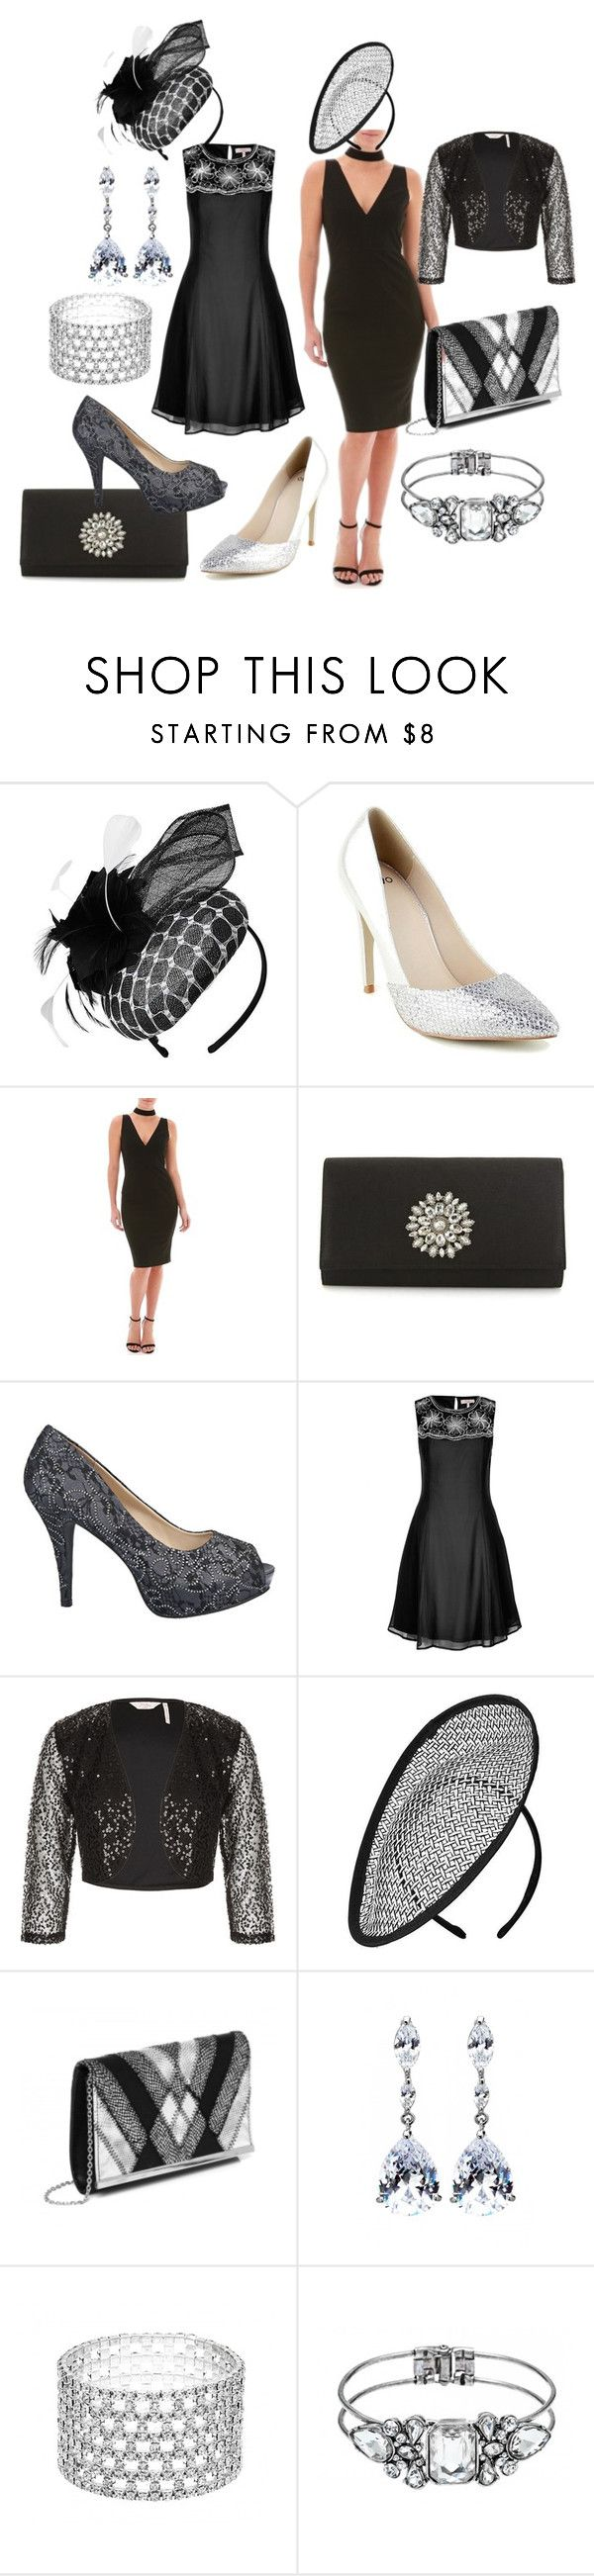 """""""Breakfast at Tiffanys"""" by thehyperdome on Polyvore"""